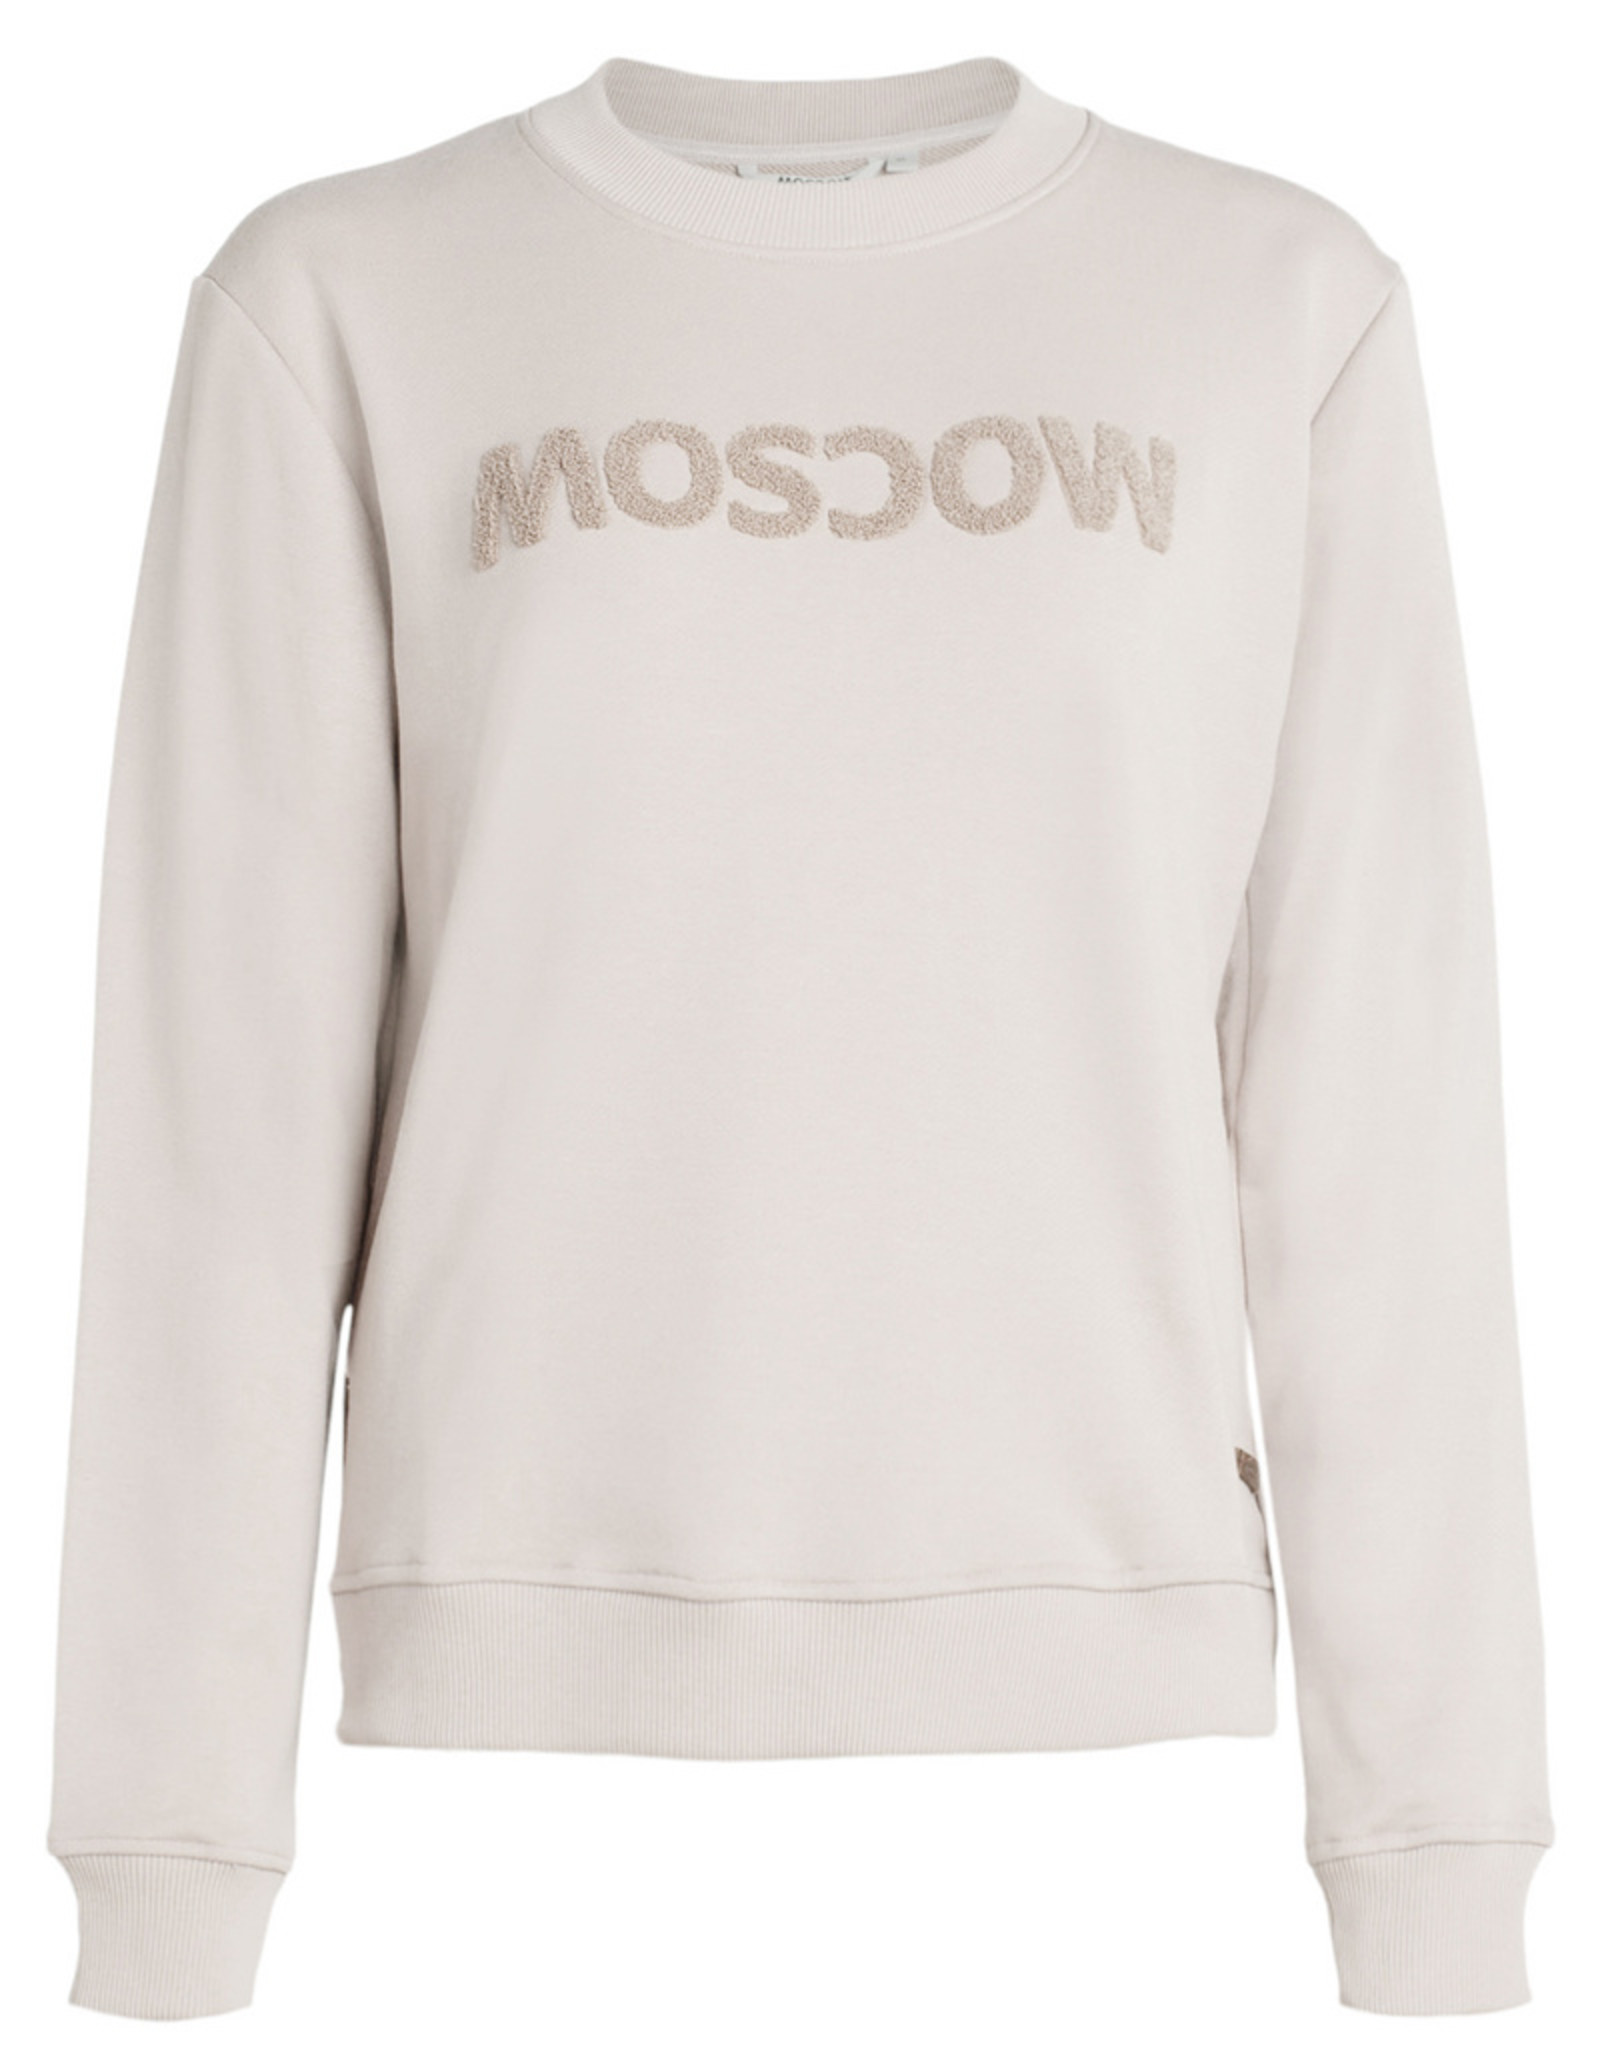 Moscow Trui Star Kit